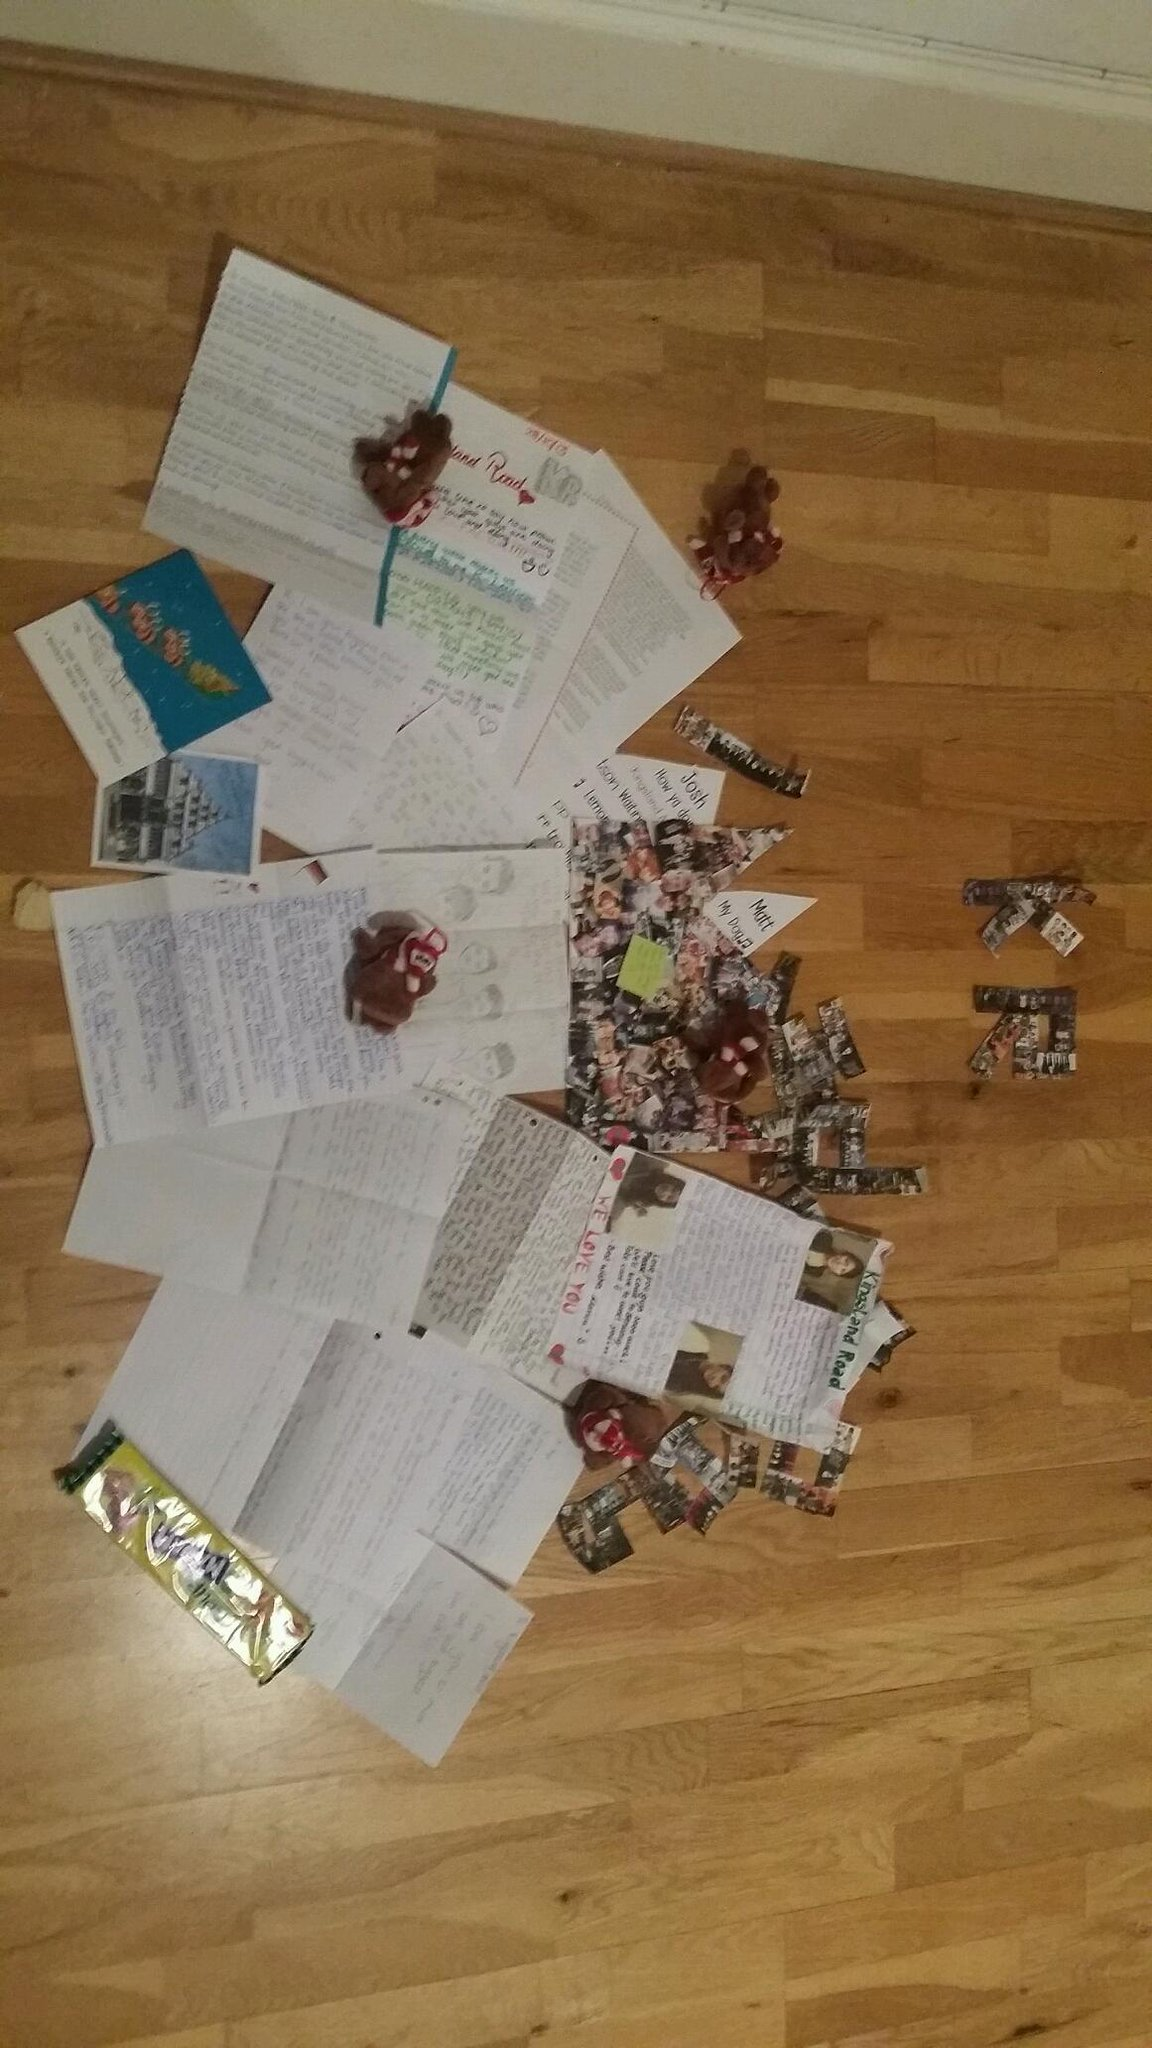 Just spent my last hour reading all this! Put a huge smile on my face! Love you KLANDERS x matt http://t.co/UKVjO8rebi